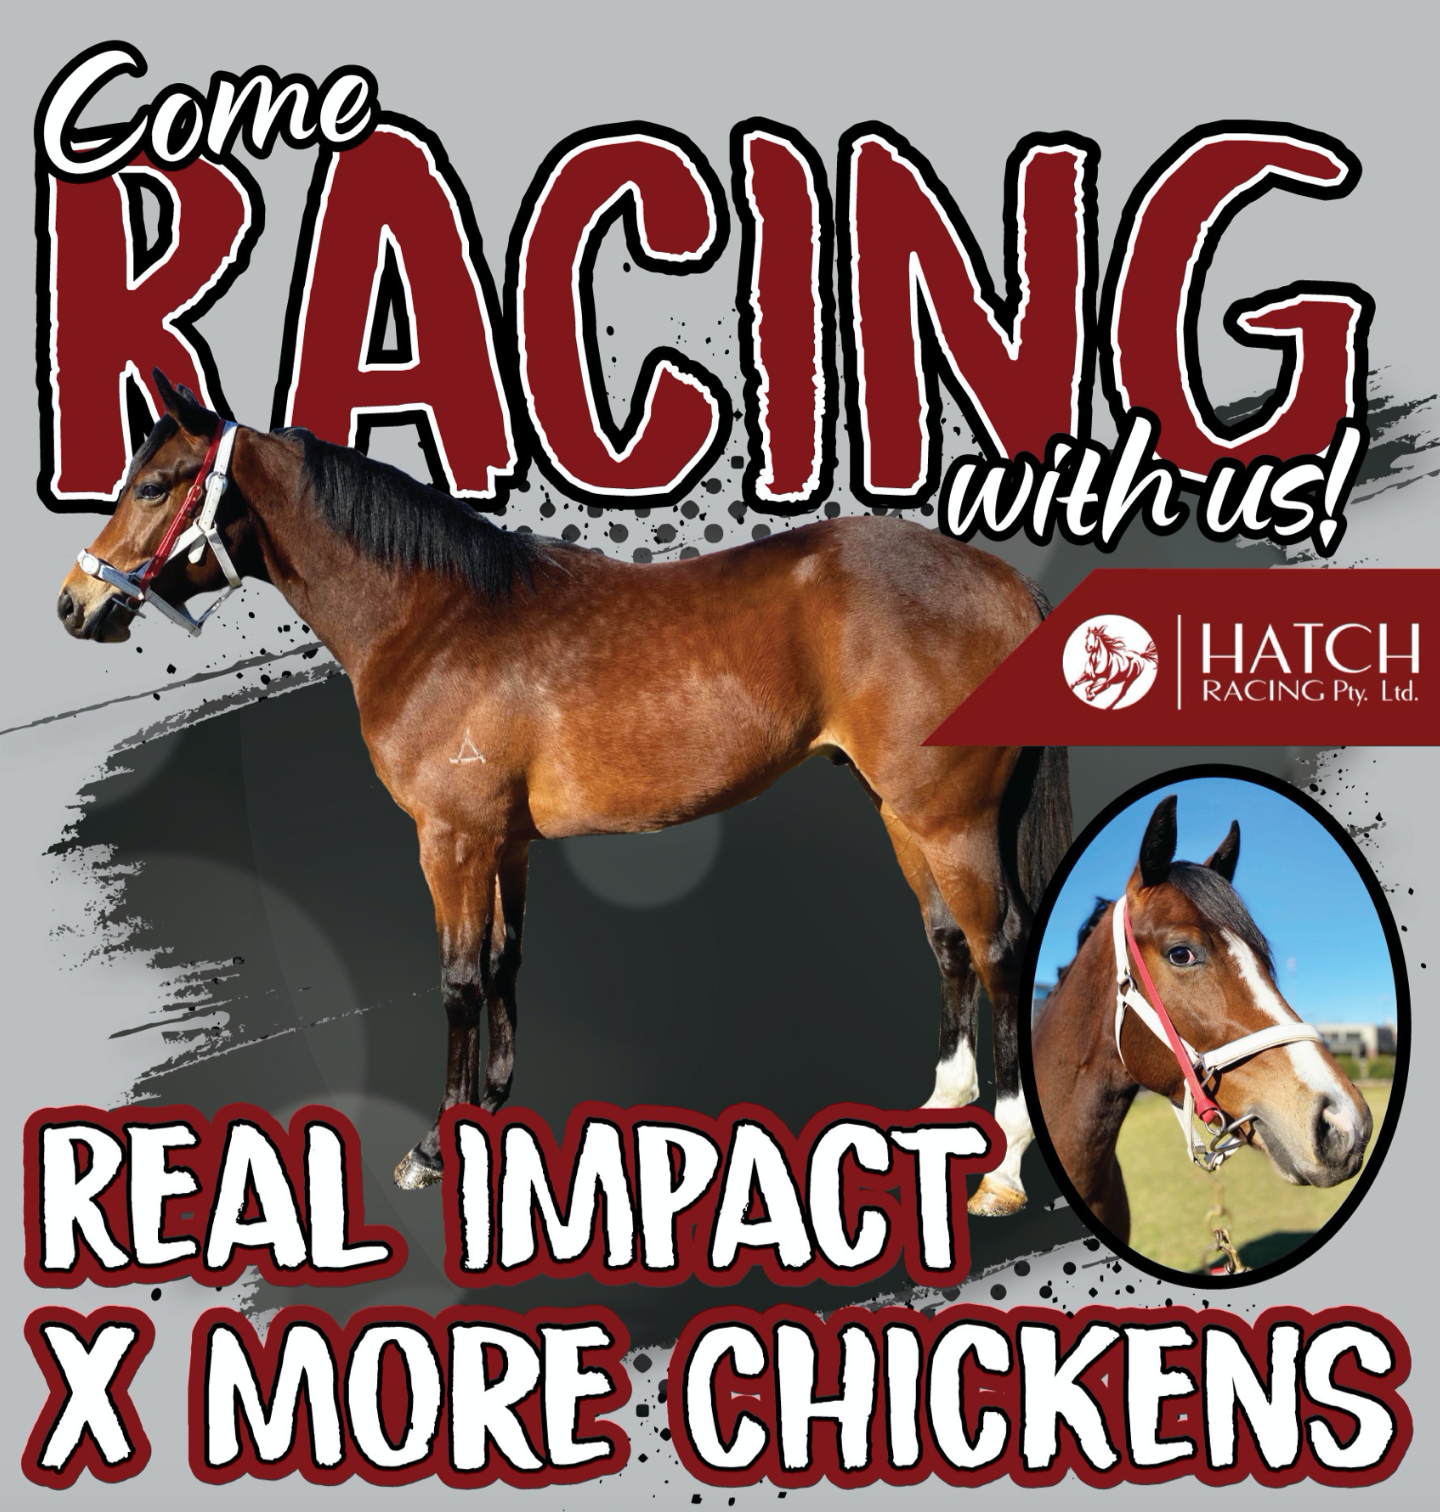 Real Impact X More Chickens